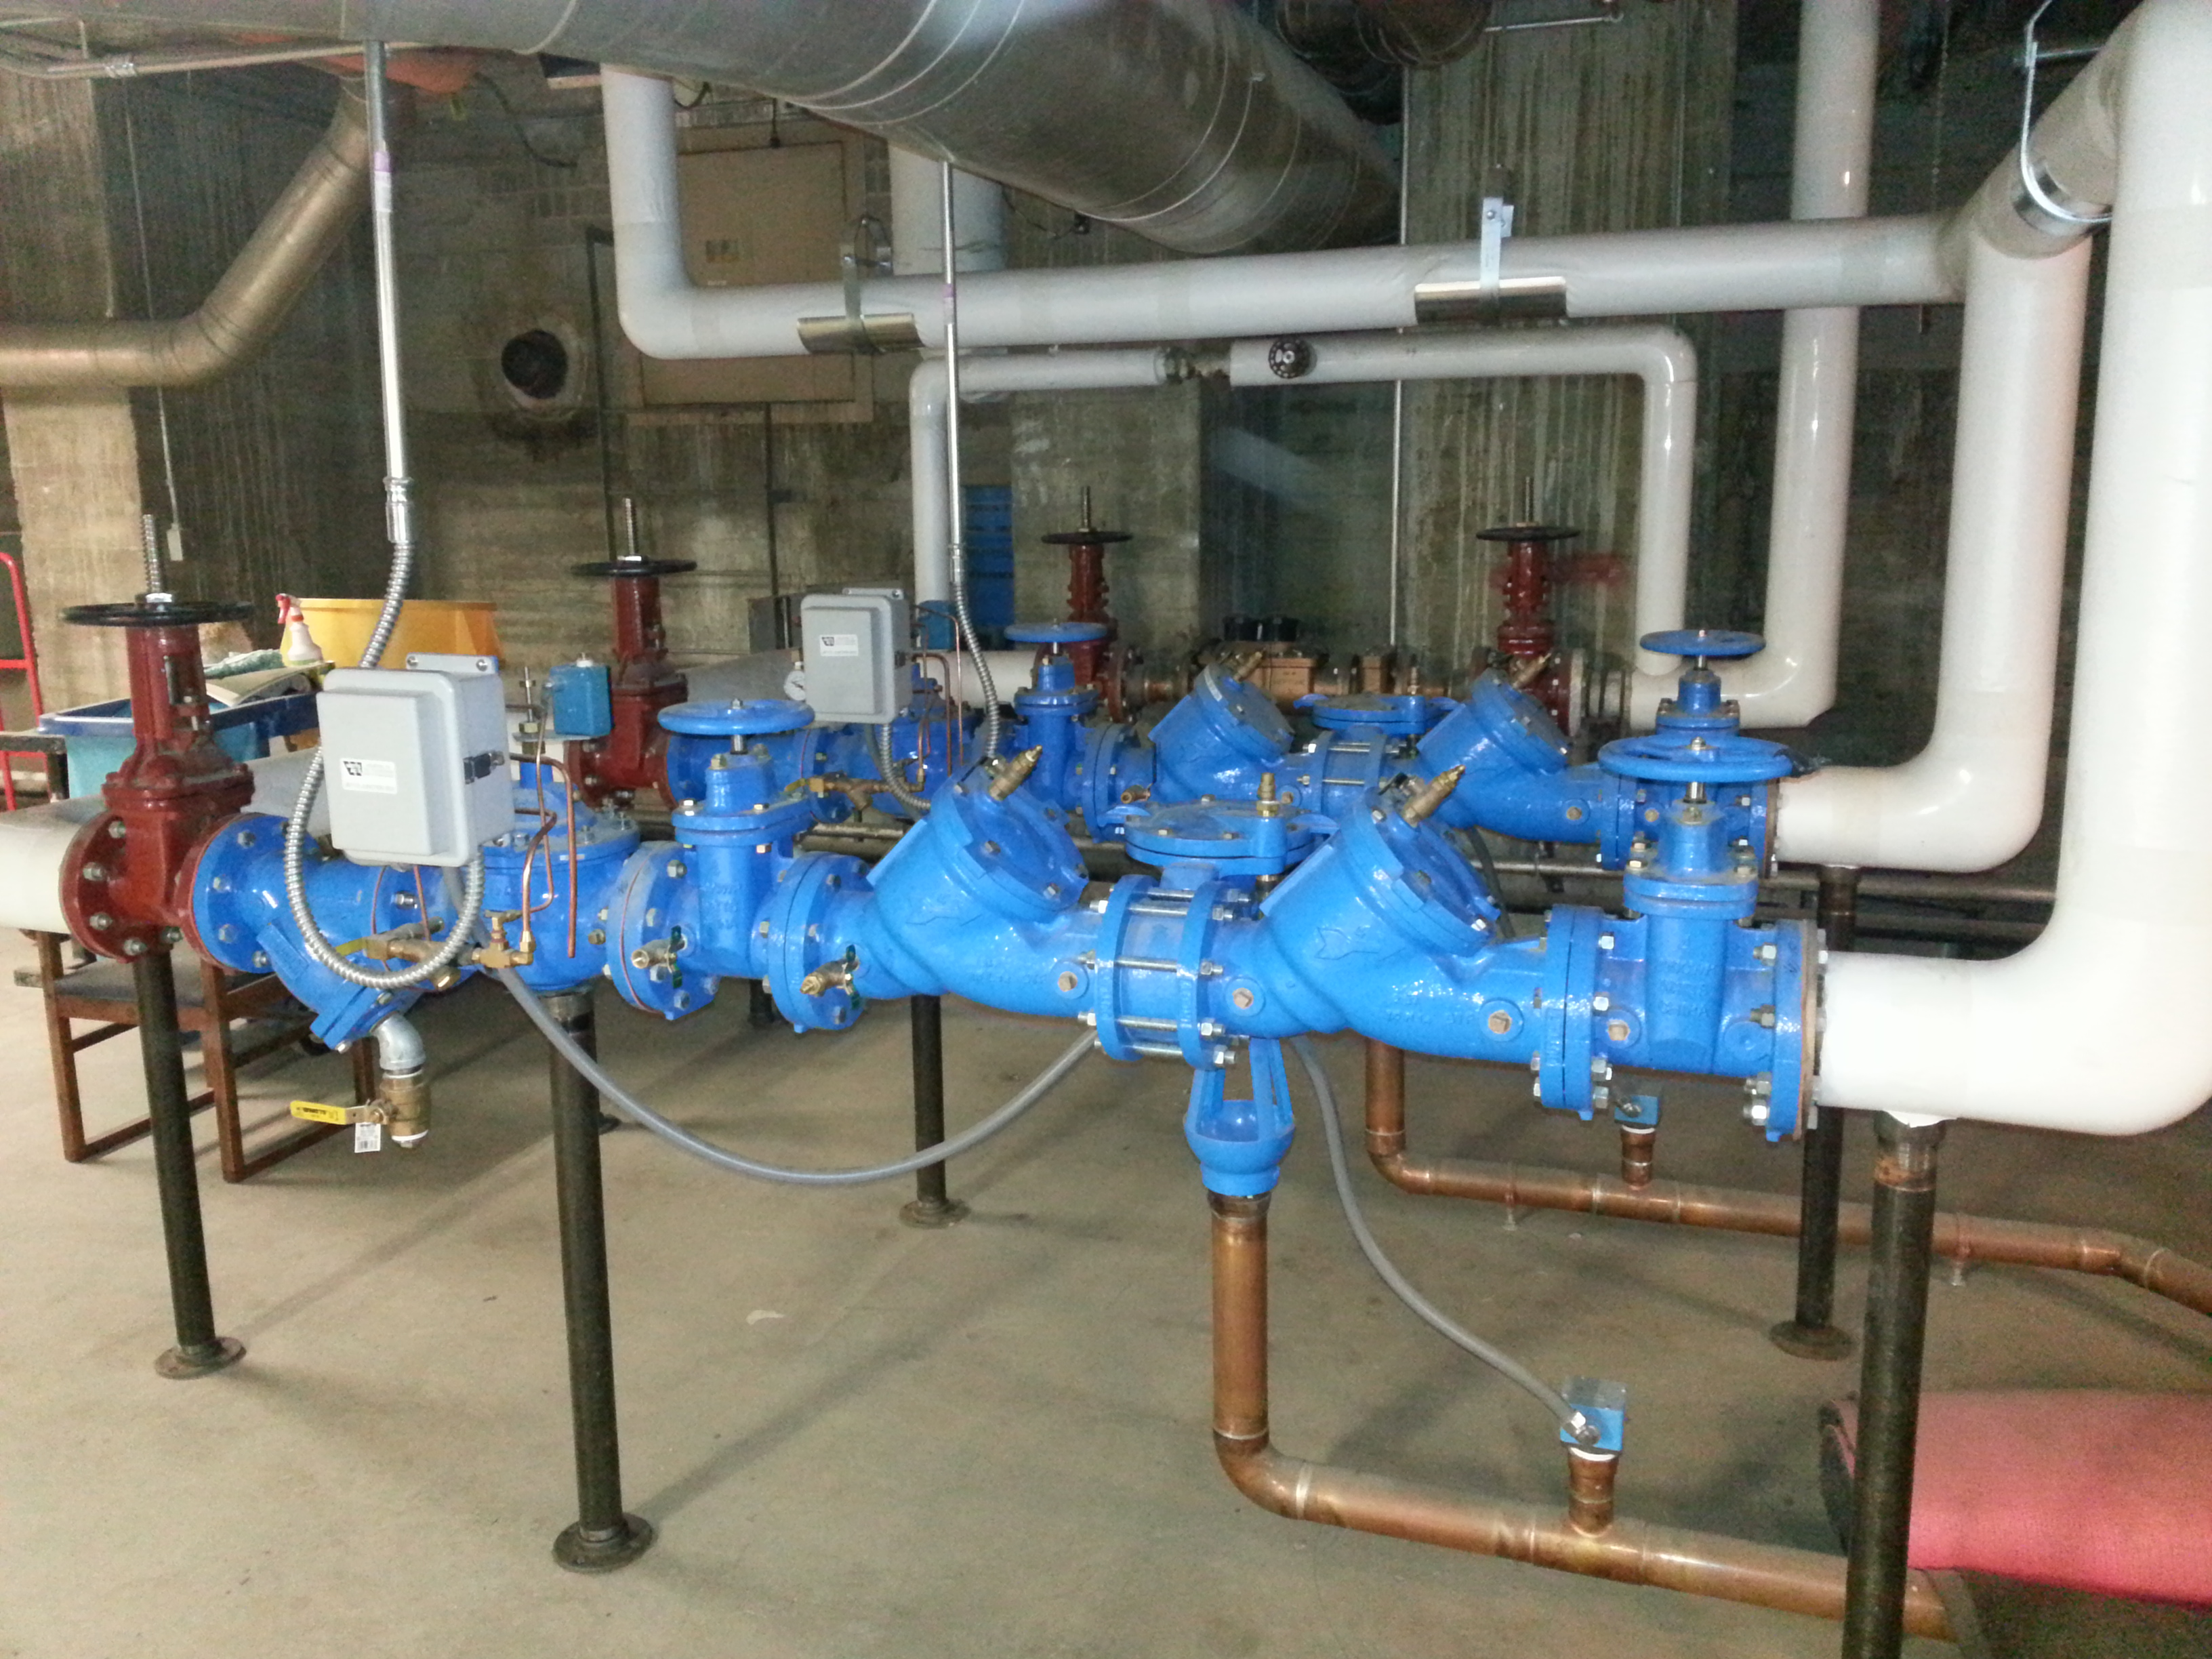 Constr_Pumps1